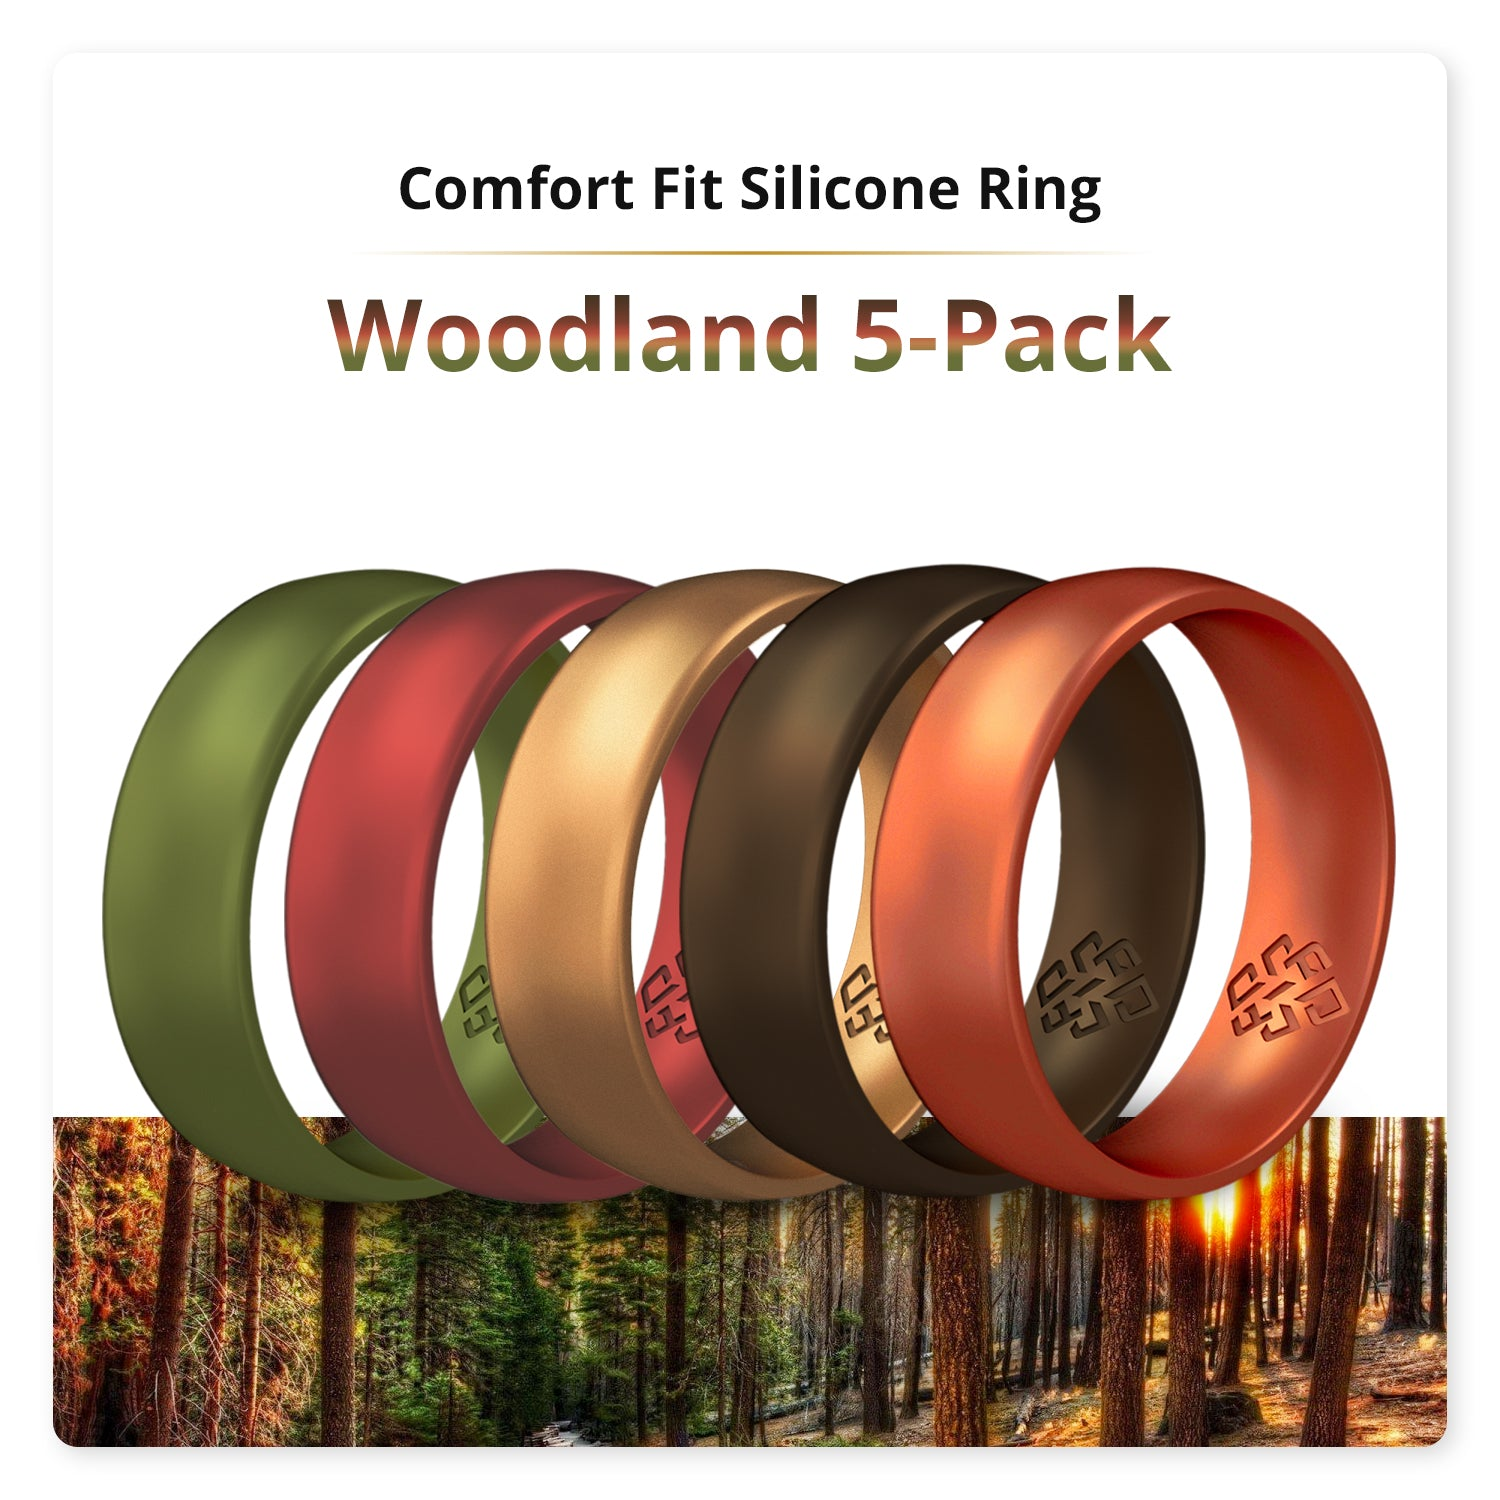 Woodland 5-Pack Domed Comfort Fit Silicone Ring Man